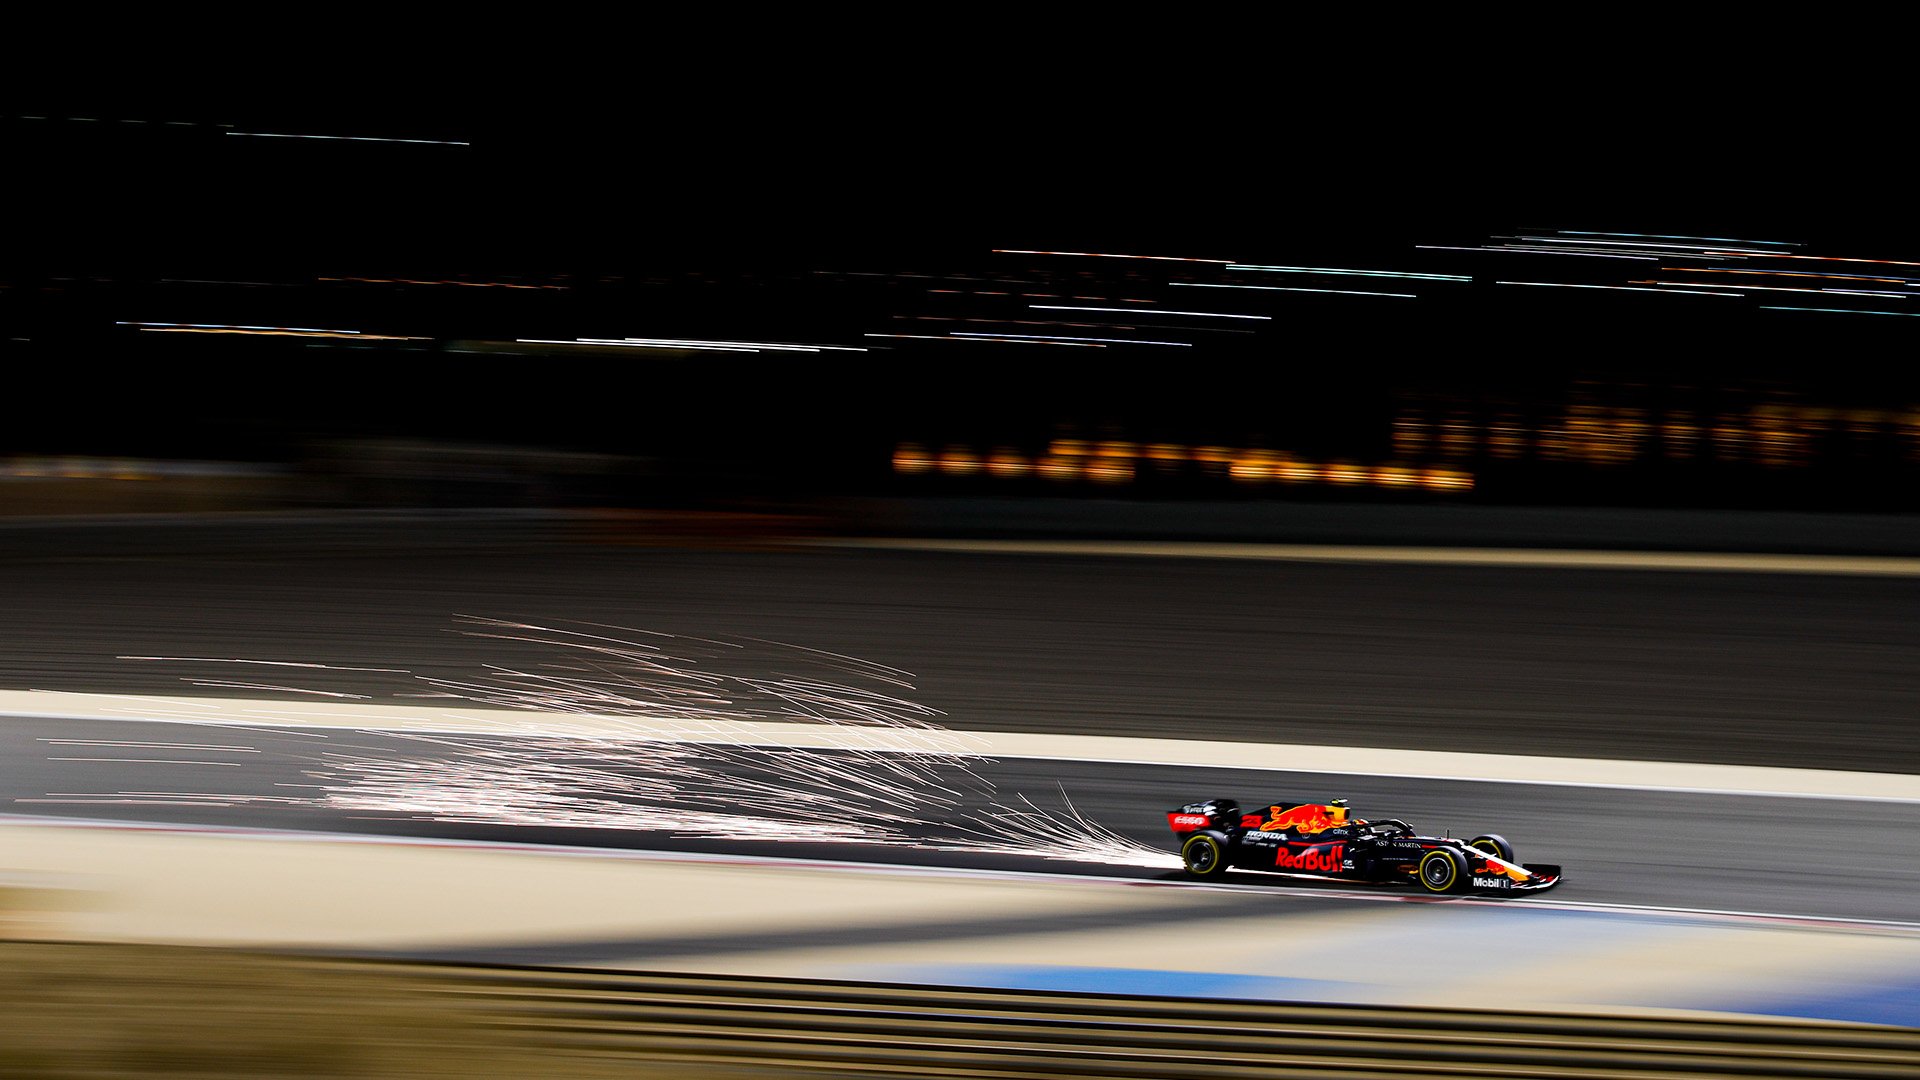 Sparks fly from Alex Albon's Red Bull during Sakhir Grand Prix practice